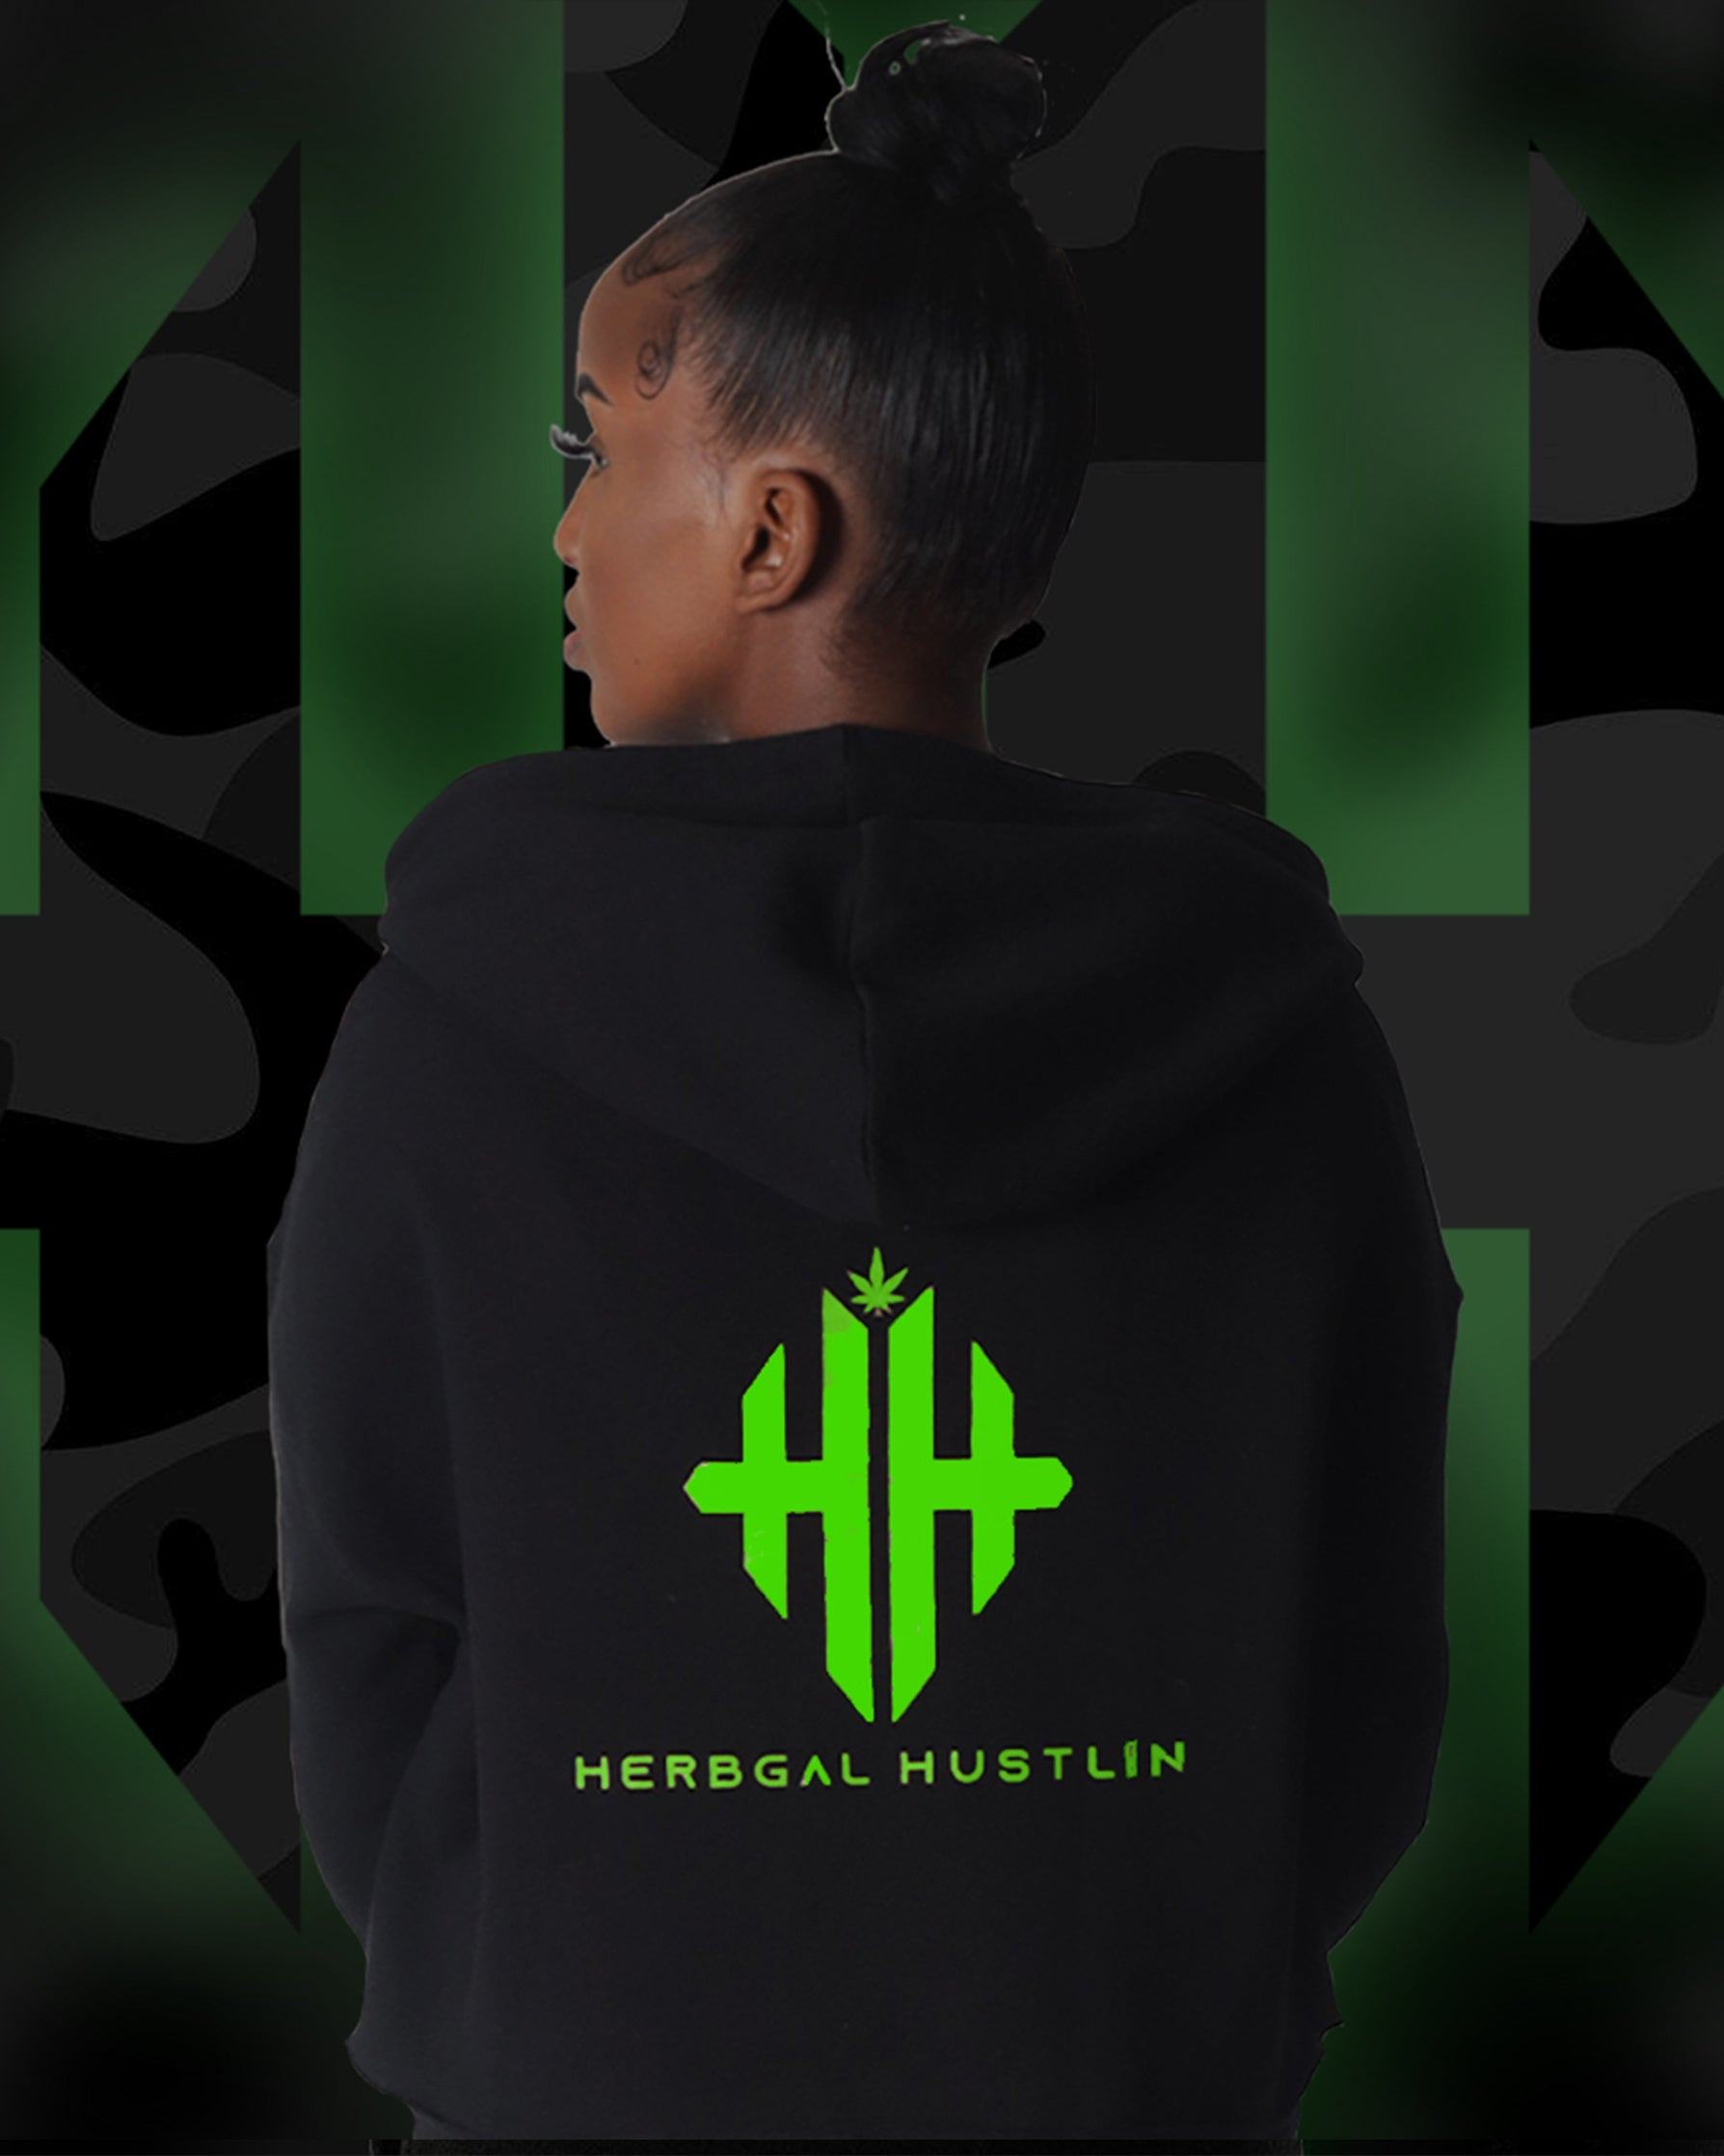 Herbgal Hustlin Monogram Tracksuit Top - Black/Glow in the Dark - Back